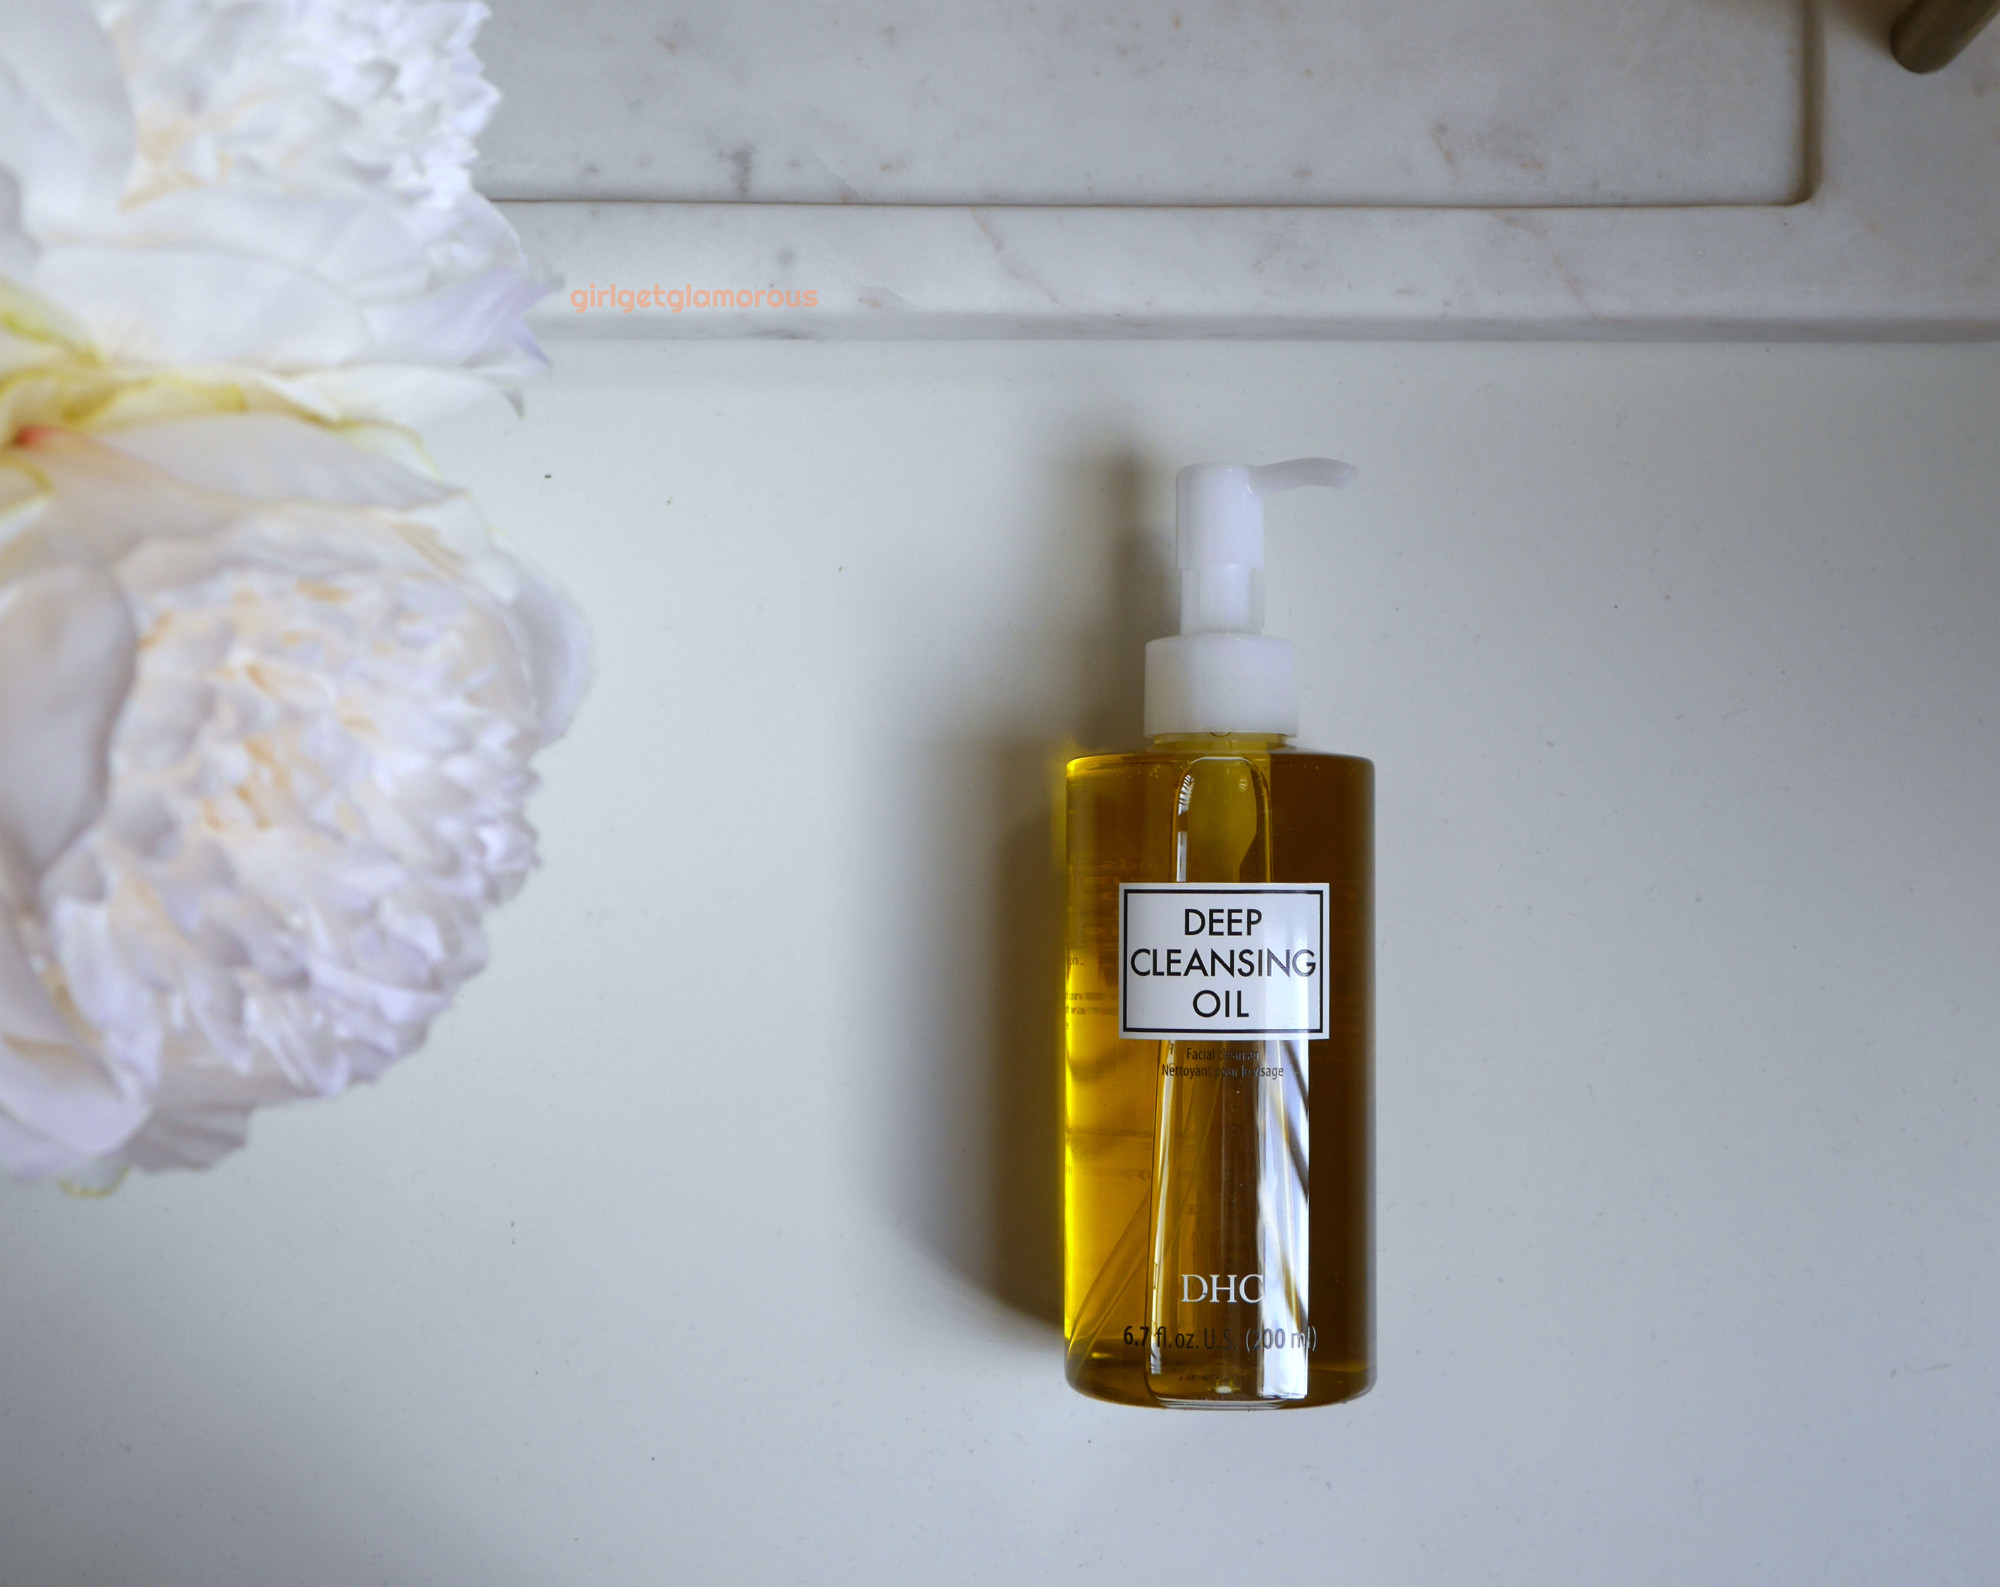 dhc deep cleansing oil review beat makeup remover face wash oil cleanser